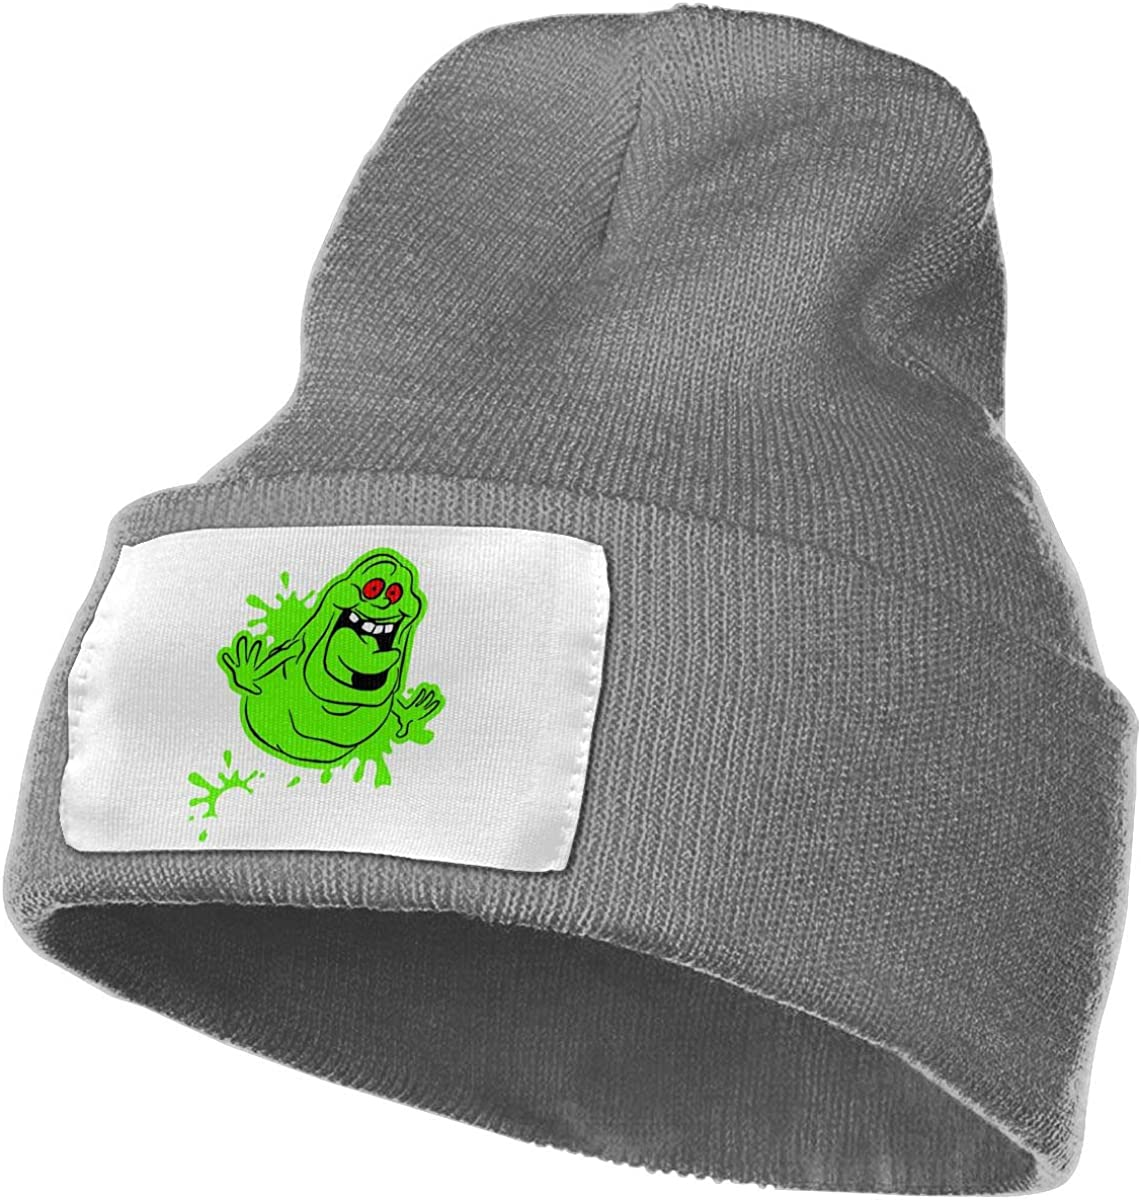 Ghostbusters Classic Winter Warm Knit Hat Beanie Cap for Men Women